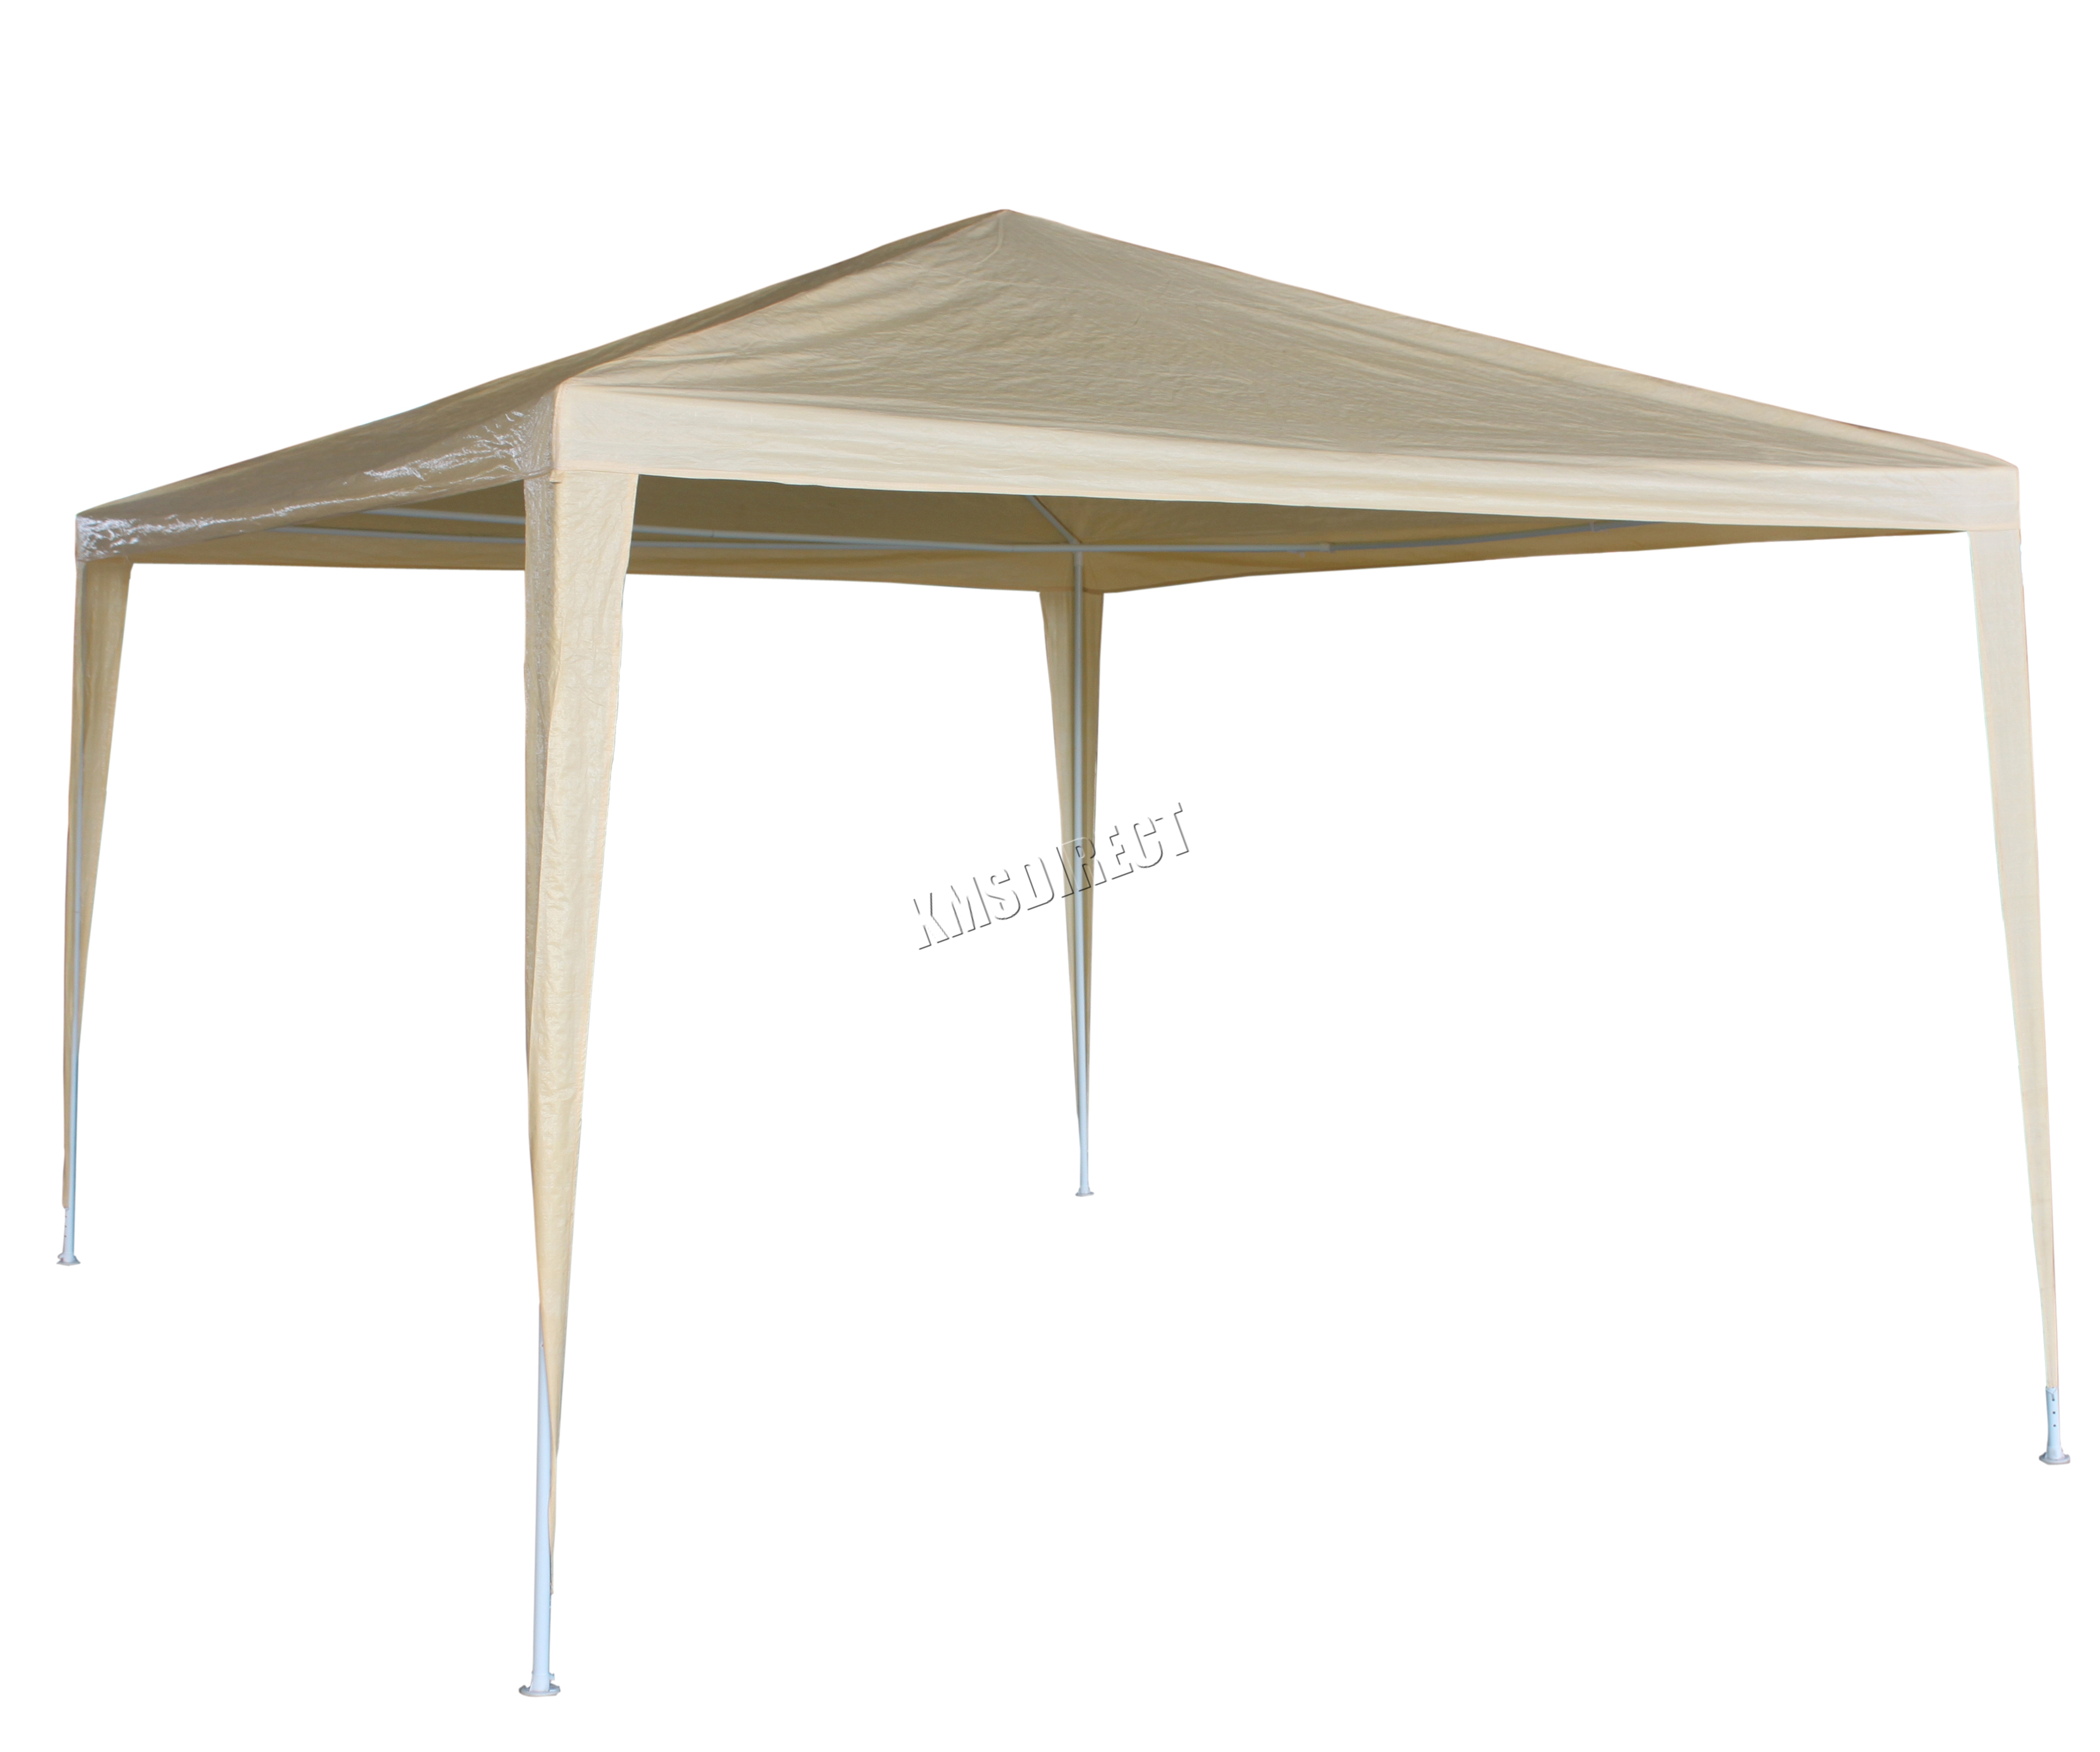 Garden gazebo 3 x 4m - Sentinel Waterproof 3m X 4m Pe Outdoor Garden Gazebo Party Tent Marquee Awning Canopy New